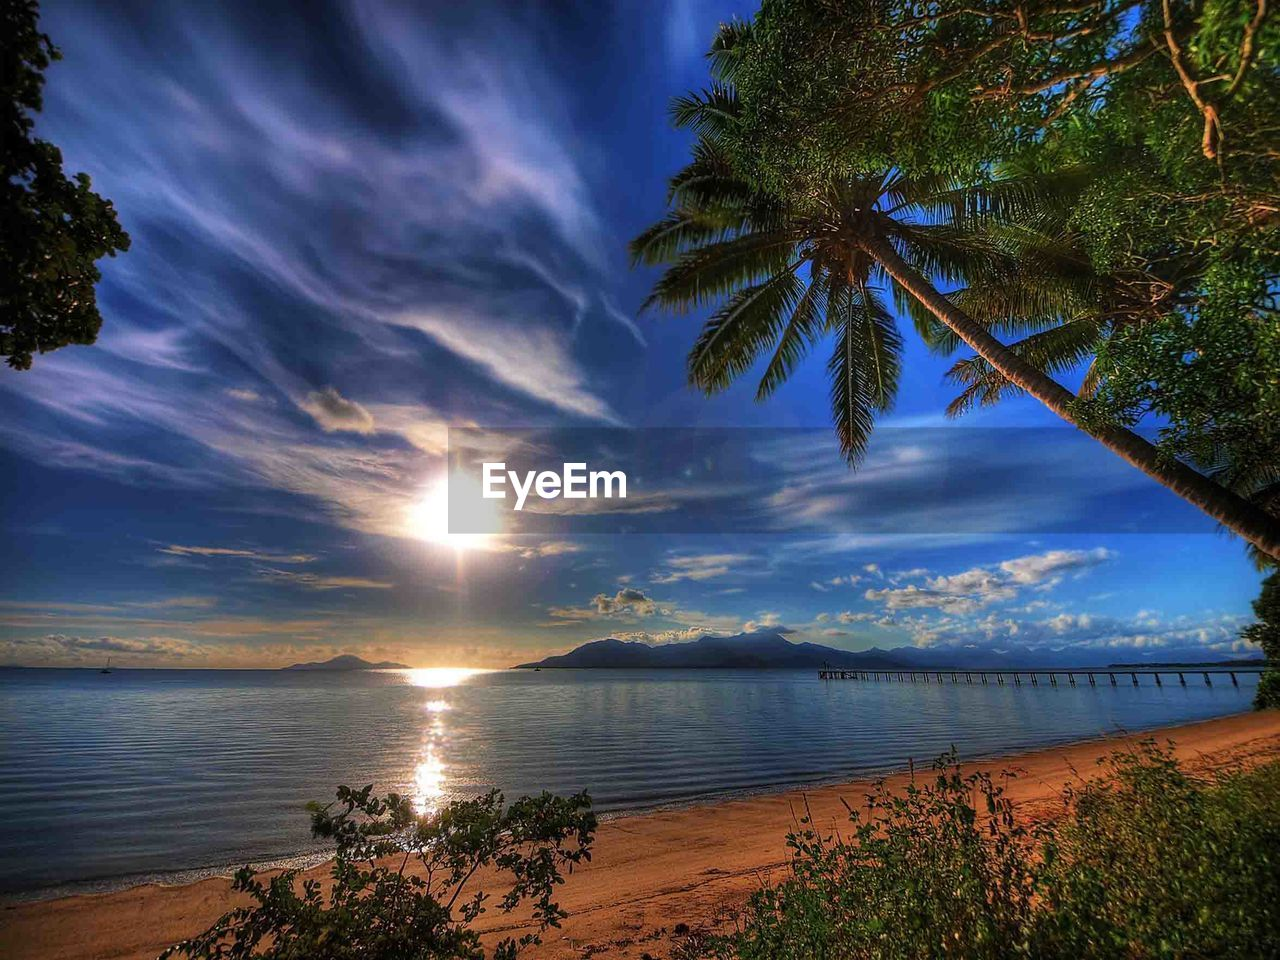 scenics, beauty in nature, tranquil scene, tranquility, sea, palm tree, tree, nature, water, beach, cloud - sky, sky, sunset, idyllic, outdoors, no people, sun, horizon over water, day